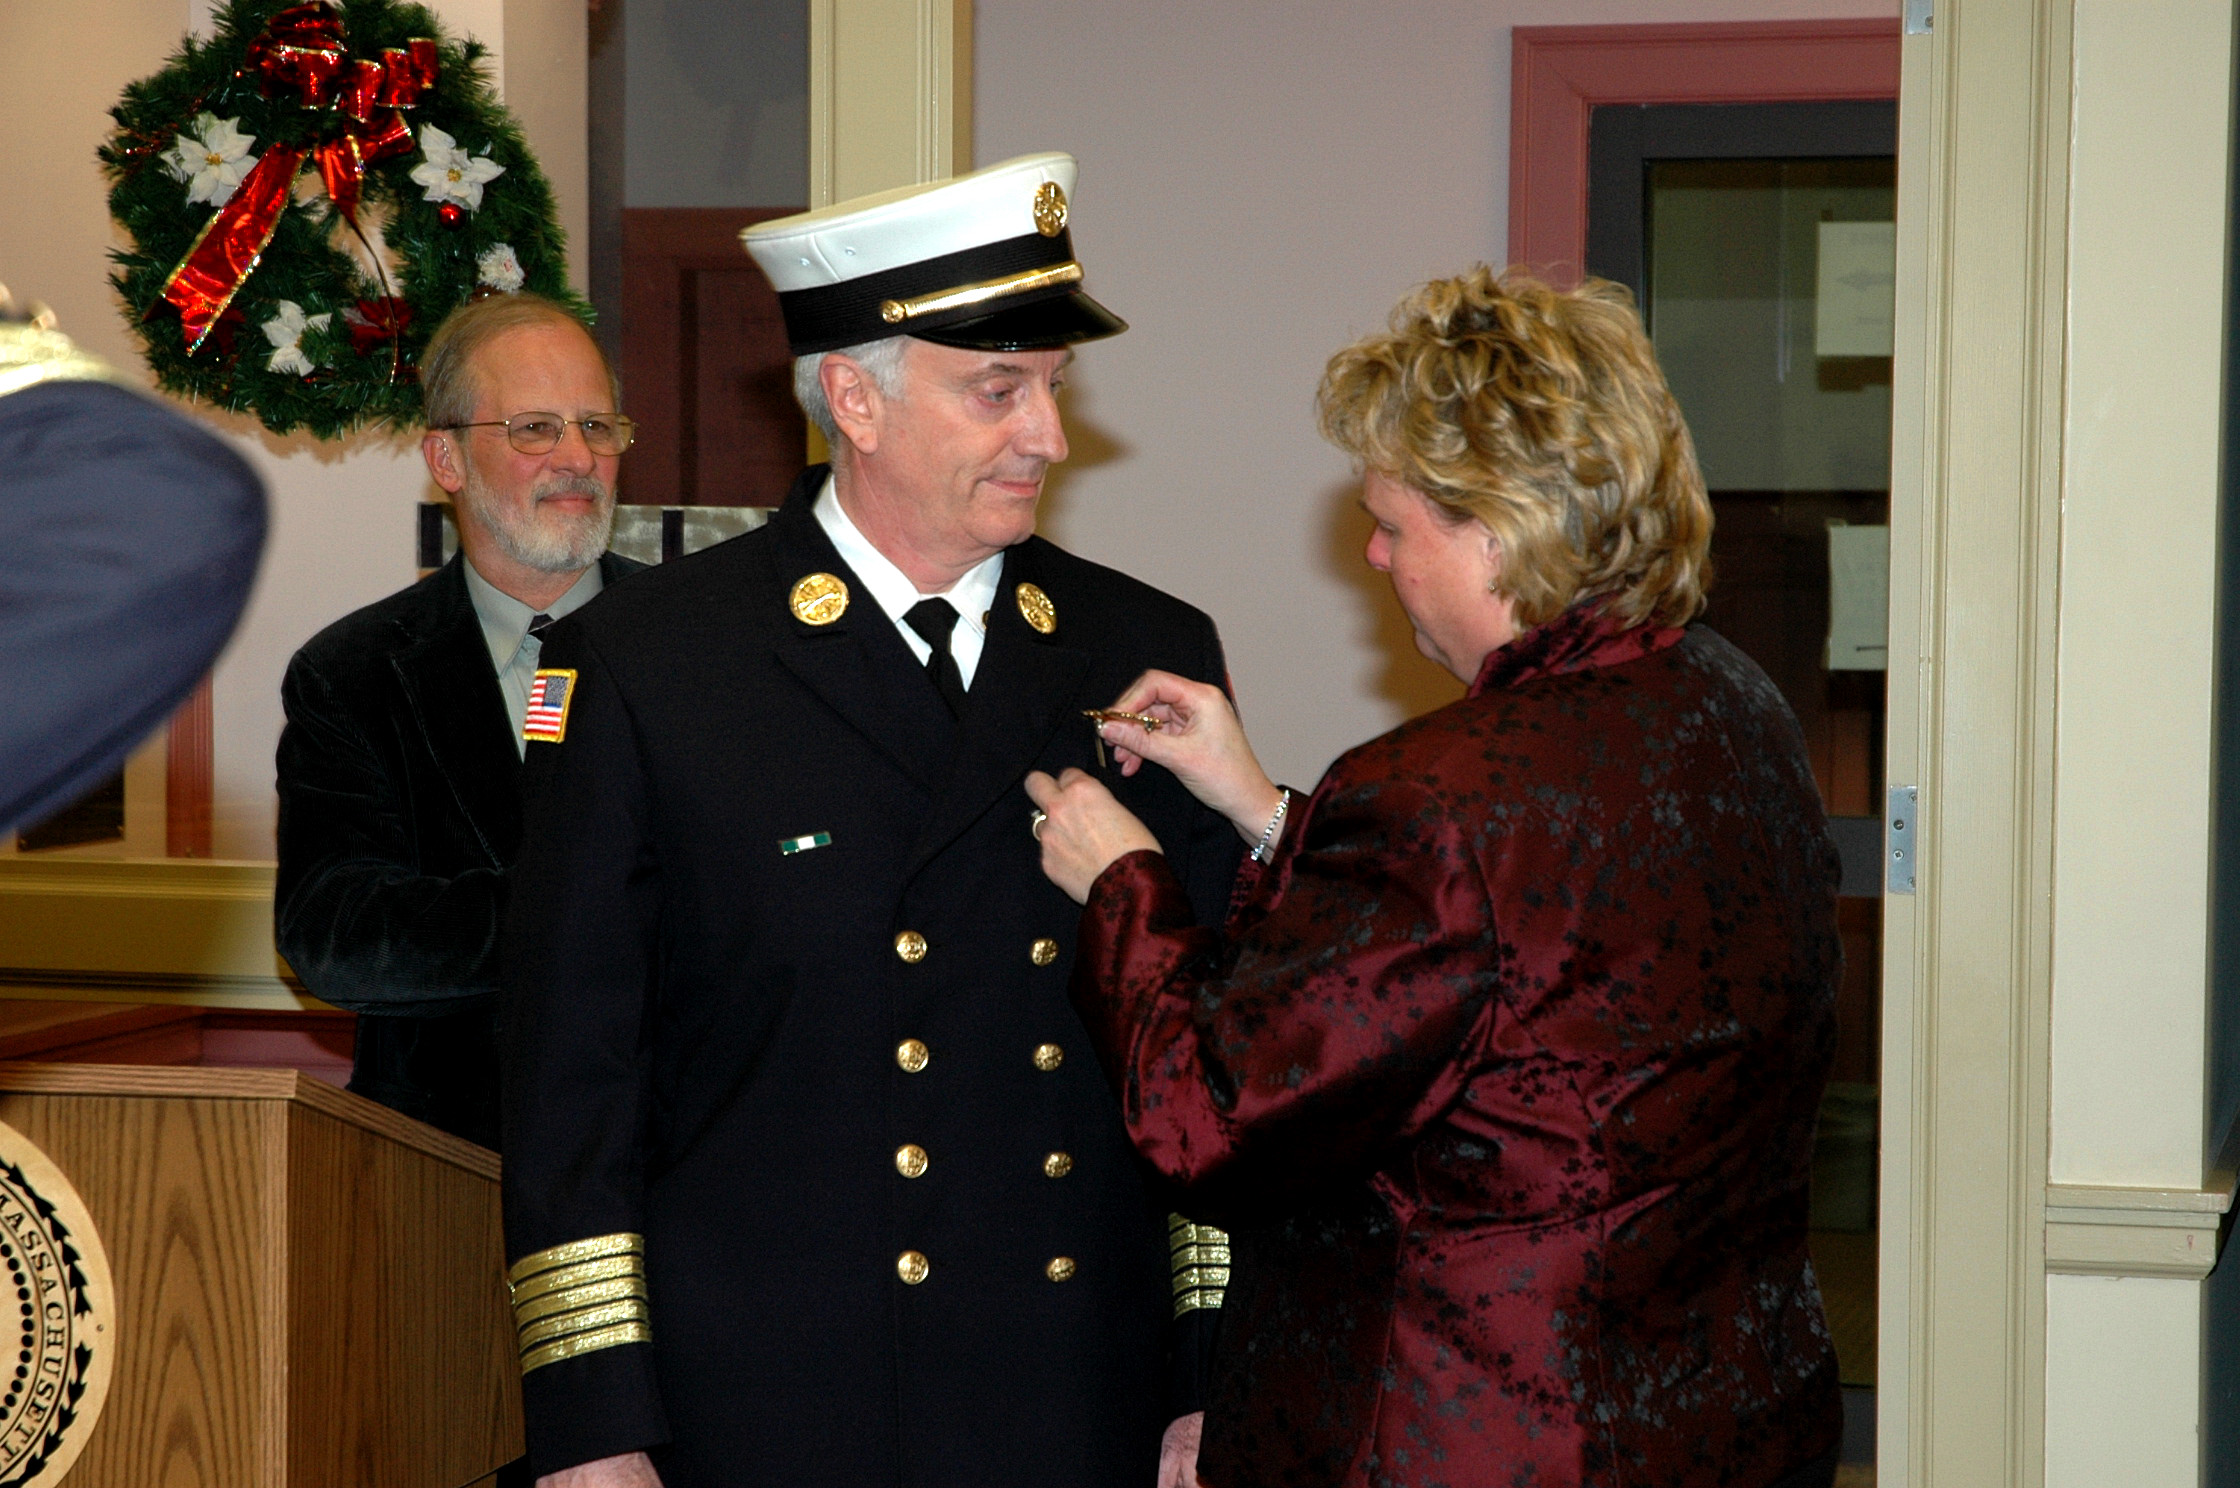 December 2007 Fire Chief Appointment, Mrs. Bradley pinned the new Chief's badge